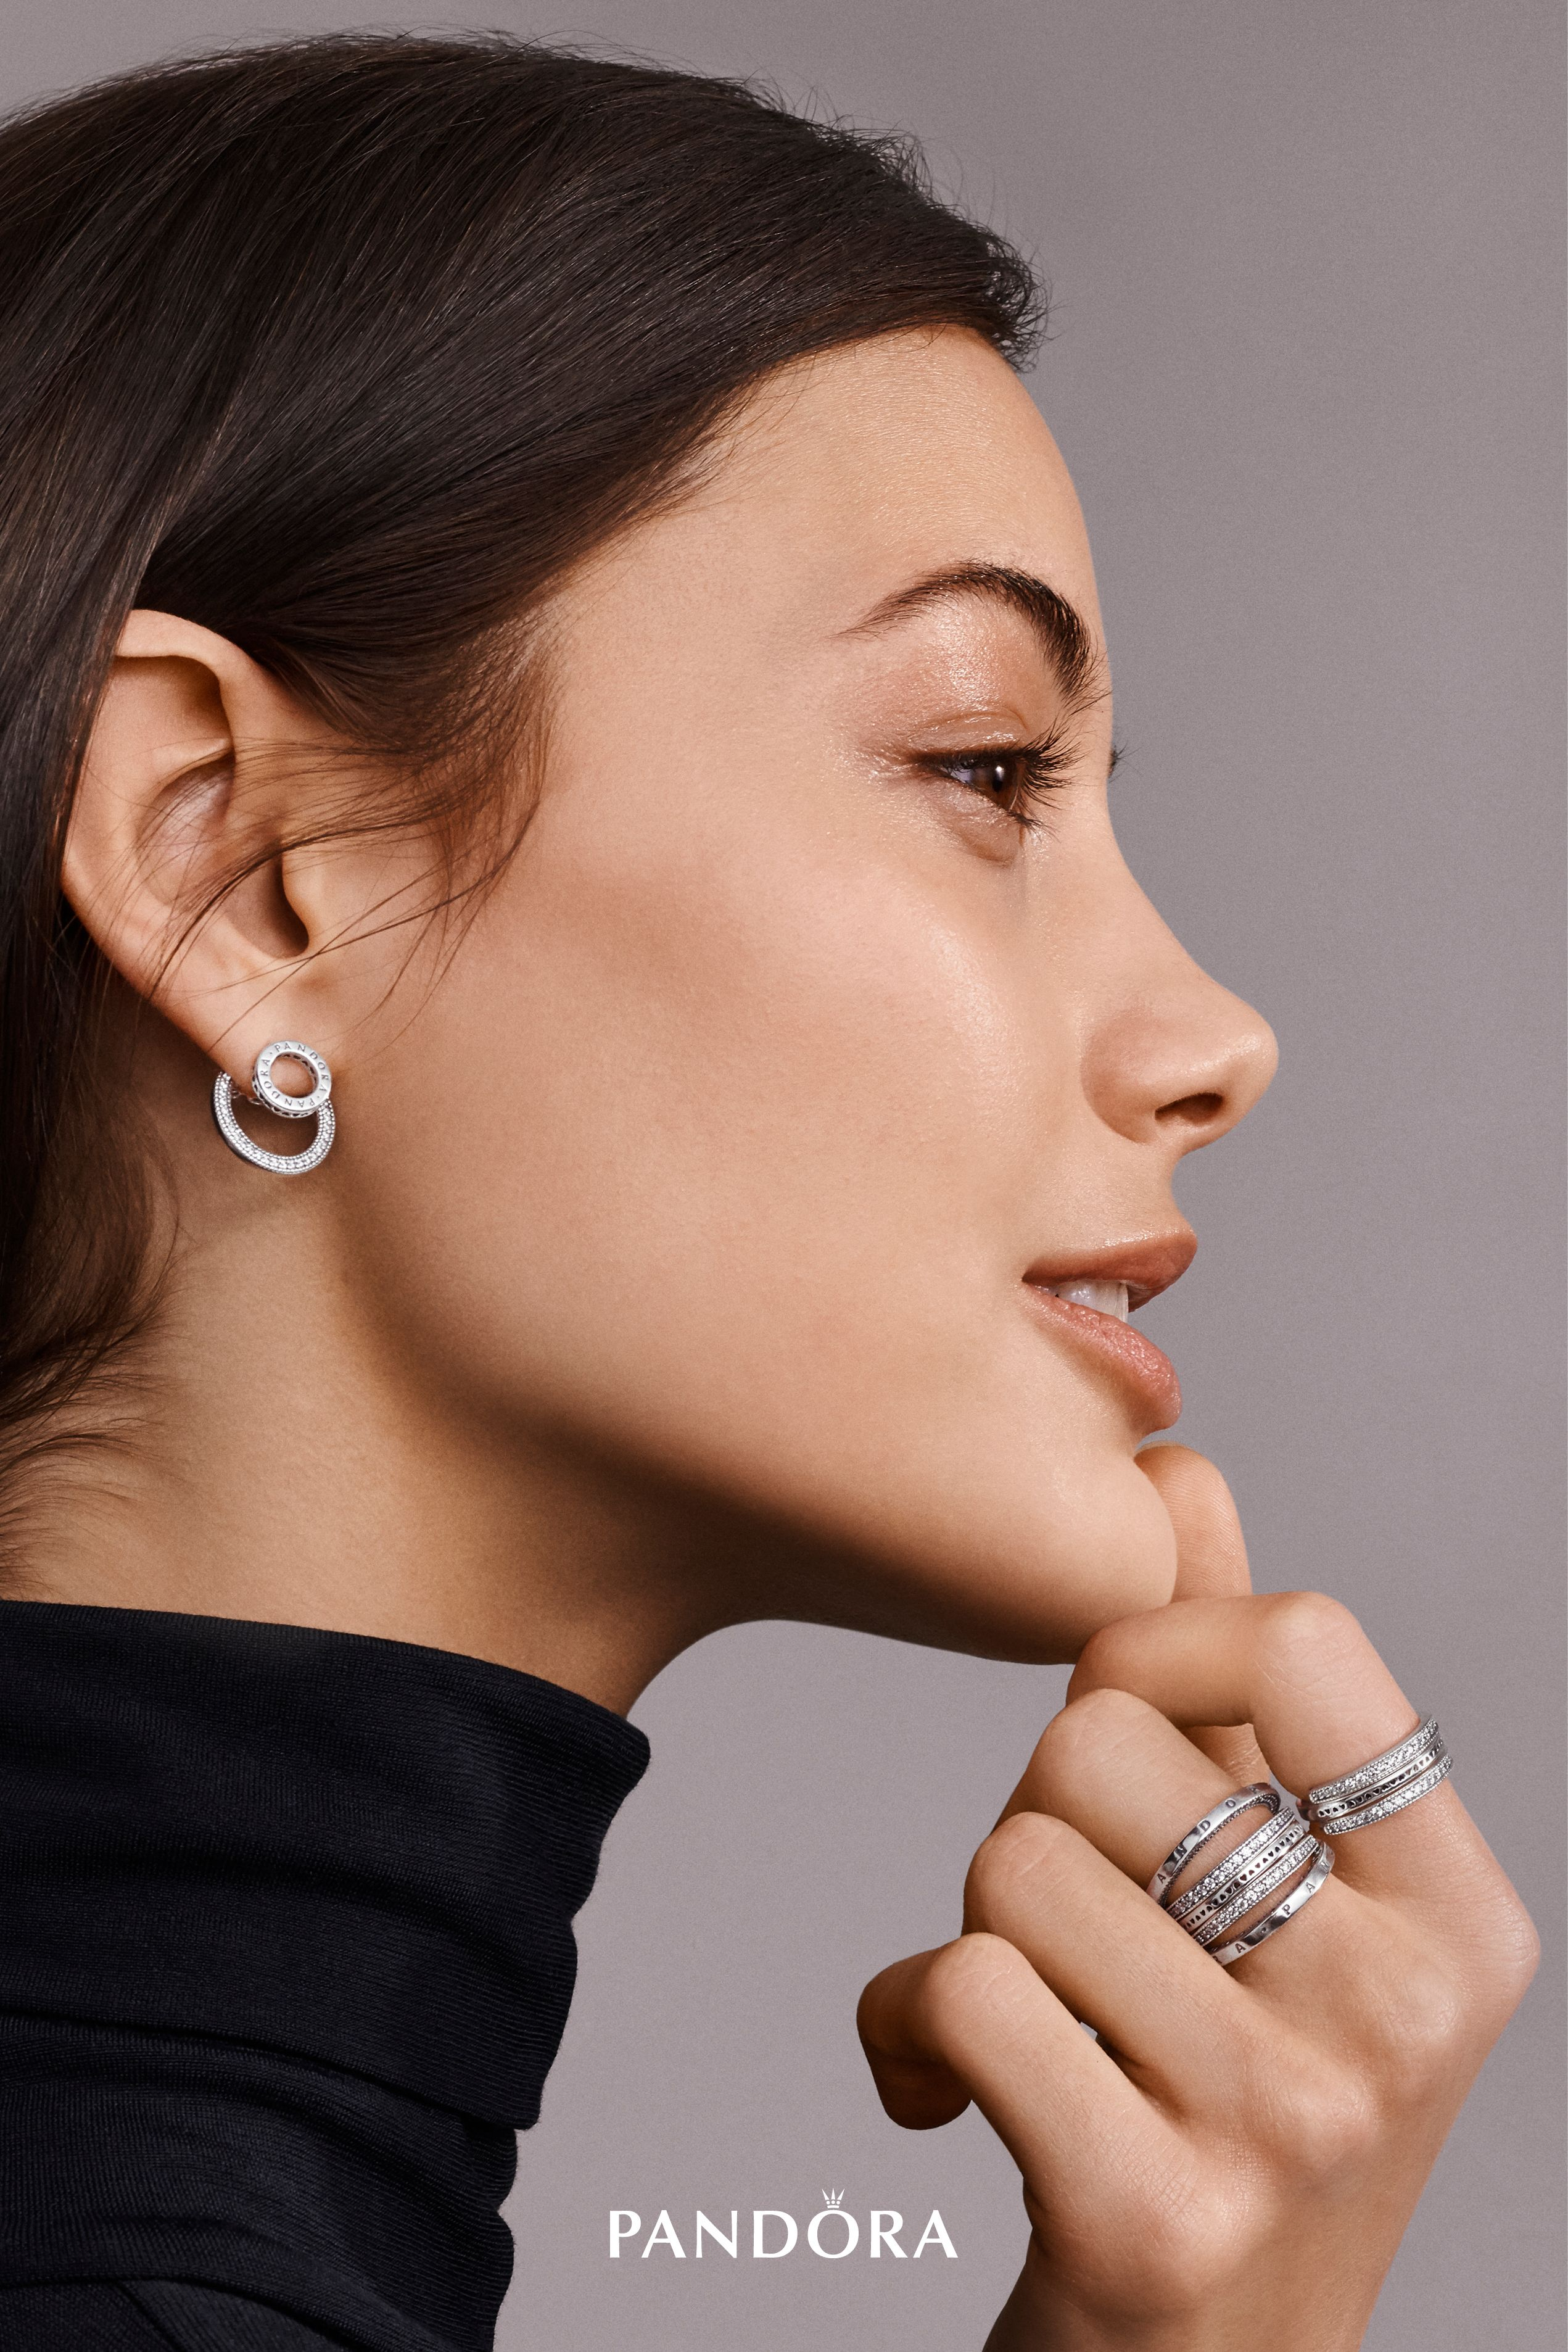 Flip It Reverse It Twist It Mix It Be Inspired To Wear It Your Way With New Jewellery Designs That Fuse Pandora Earrings Stacked Jewelry Signature Jewelry